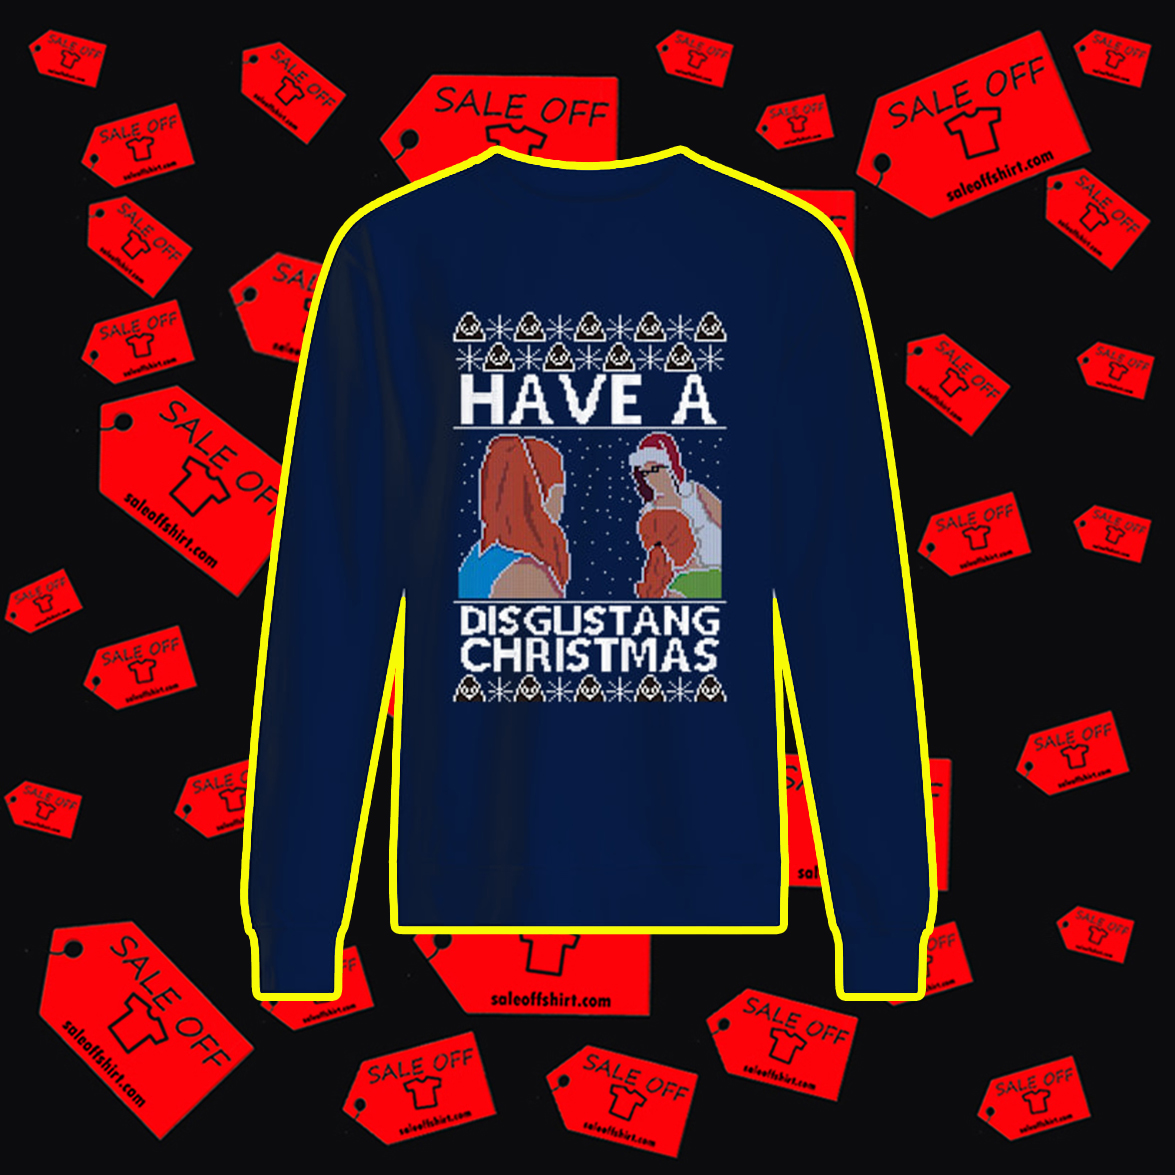 Have a disgustang christmas ugly sweater- navy